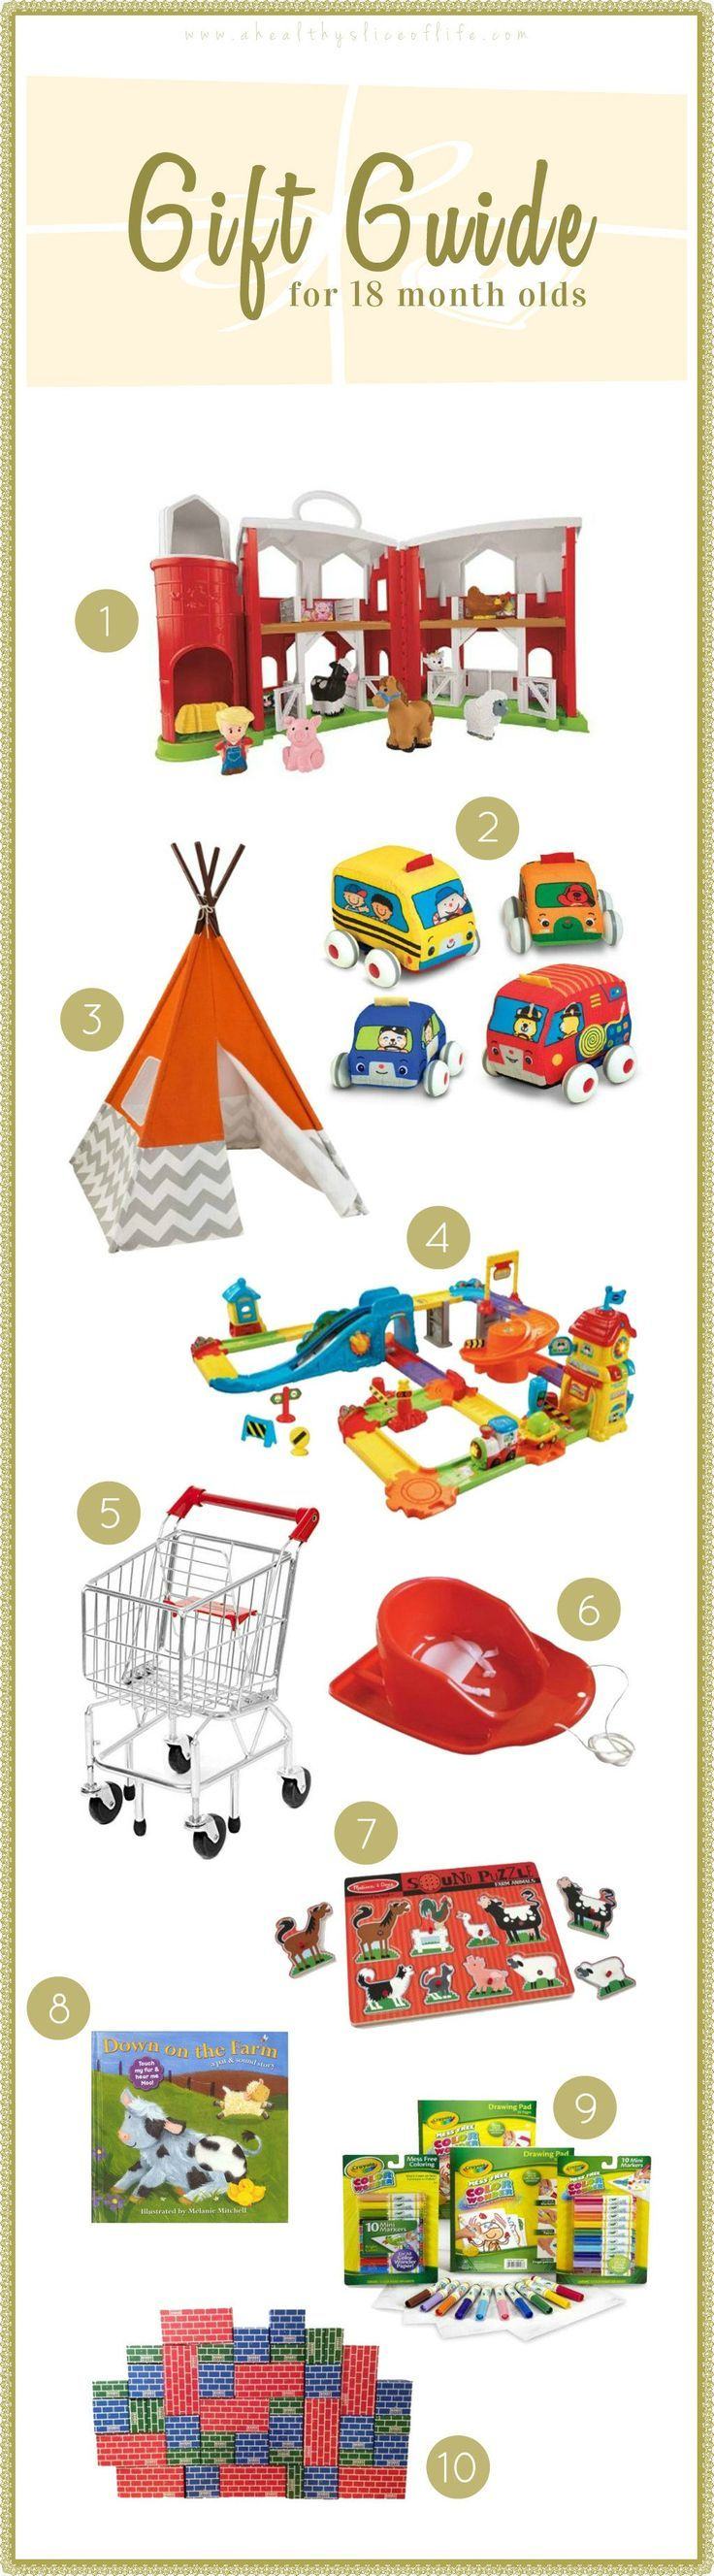 Gift Ideas for Toddlers 18 Months